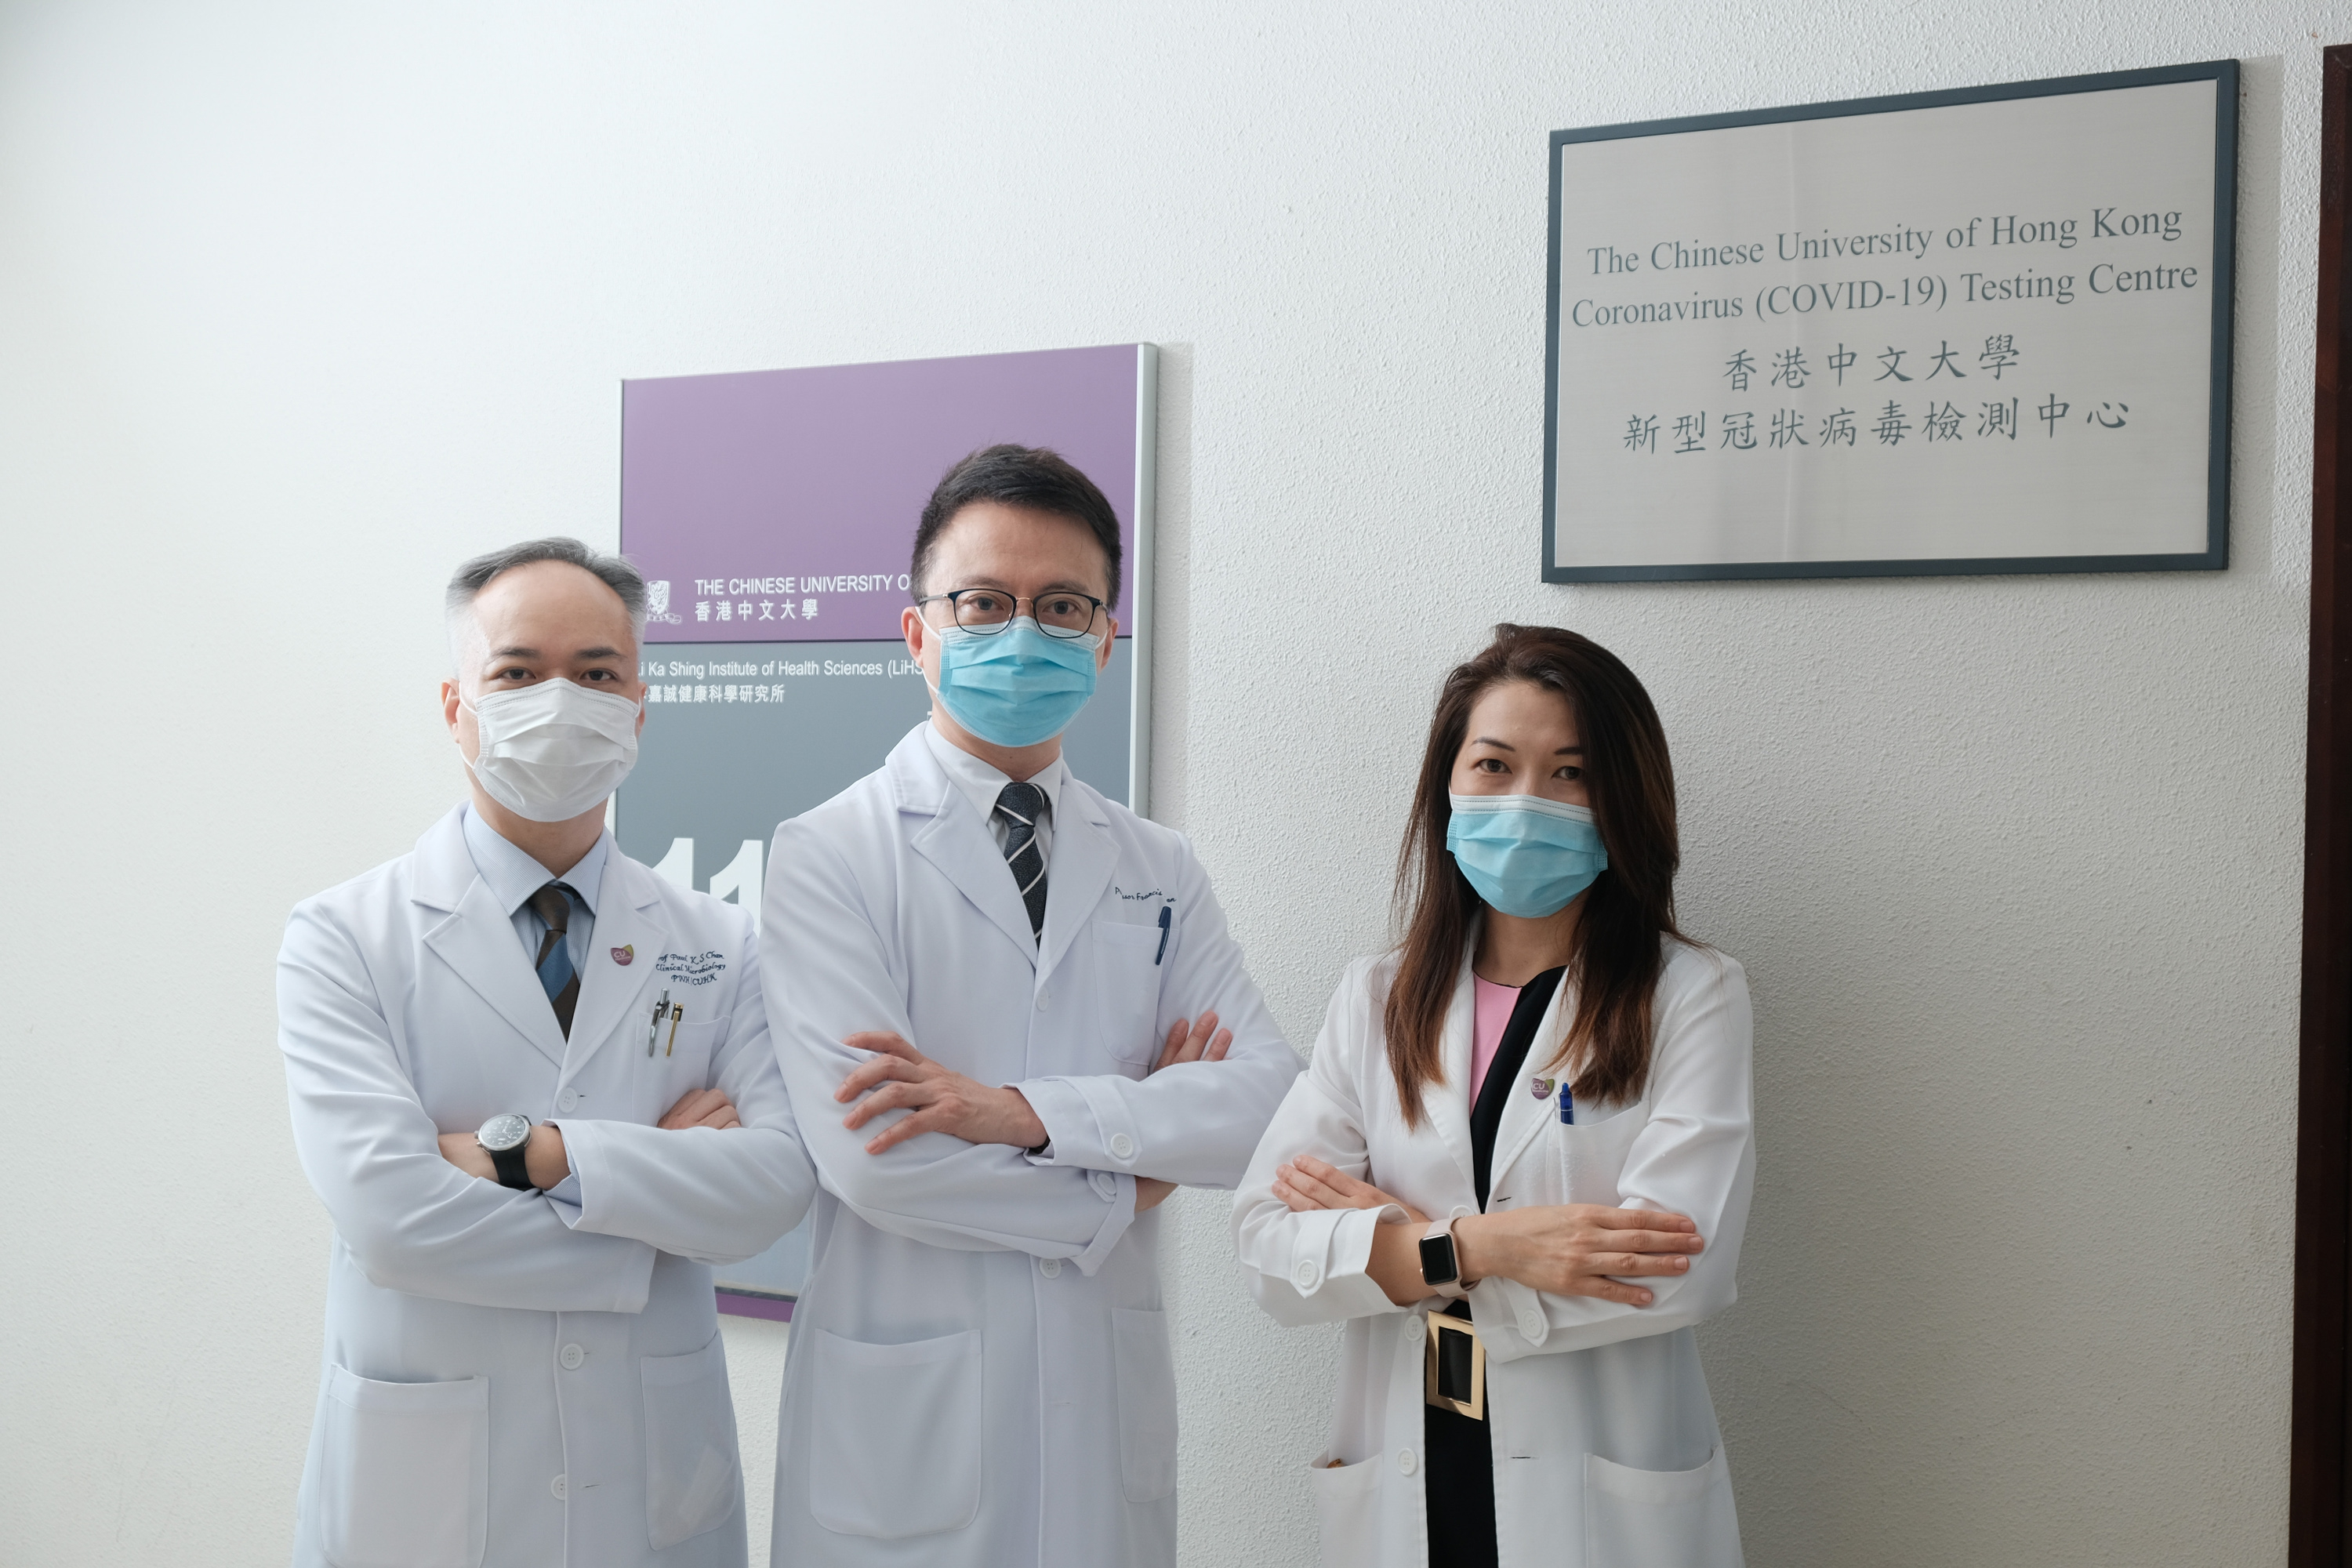 CUHK established a Coronavirus Testing Centre for paediatric population to identify silent carriers of COVID-19 viruses, with a target to provide up to 2,000 COVID-19 tests per day.  (From left) Professor Paul CHAN, Chairman of the Department of Microbiology and Associate Director of the Centre for Gut Microbiota Research; Professor Francis CHAN, Dean of CU Medicine and Director of the Centre for Gut Microbiota Research; and Professor Siew NG, Associate Director of the Centre for Gut Microbiota Research, at CUHK.